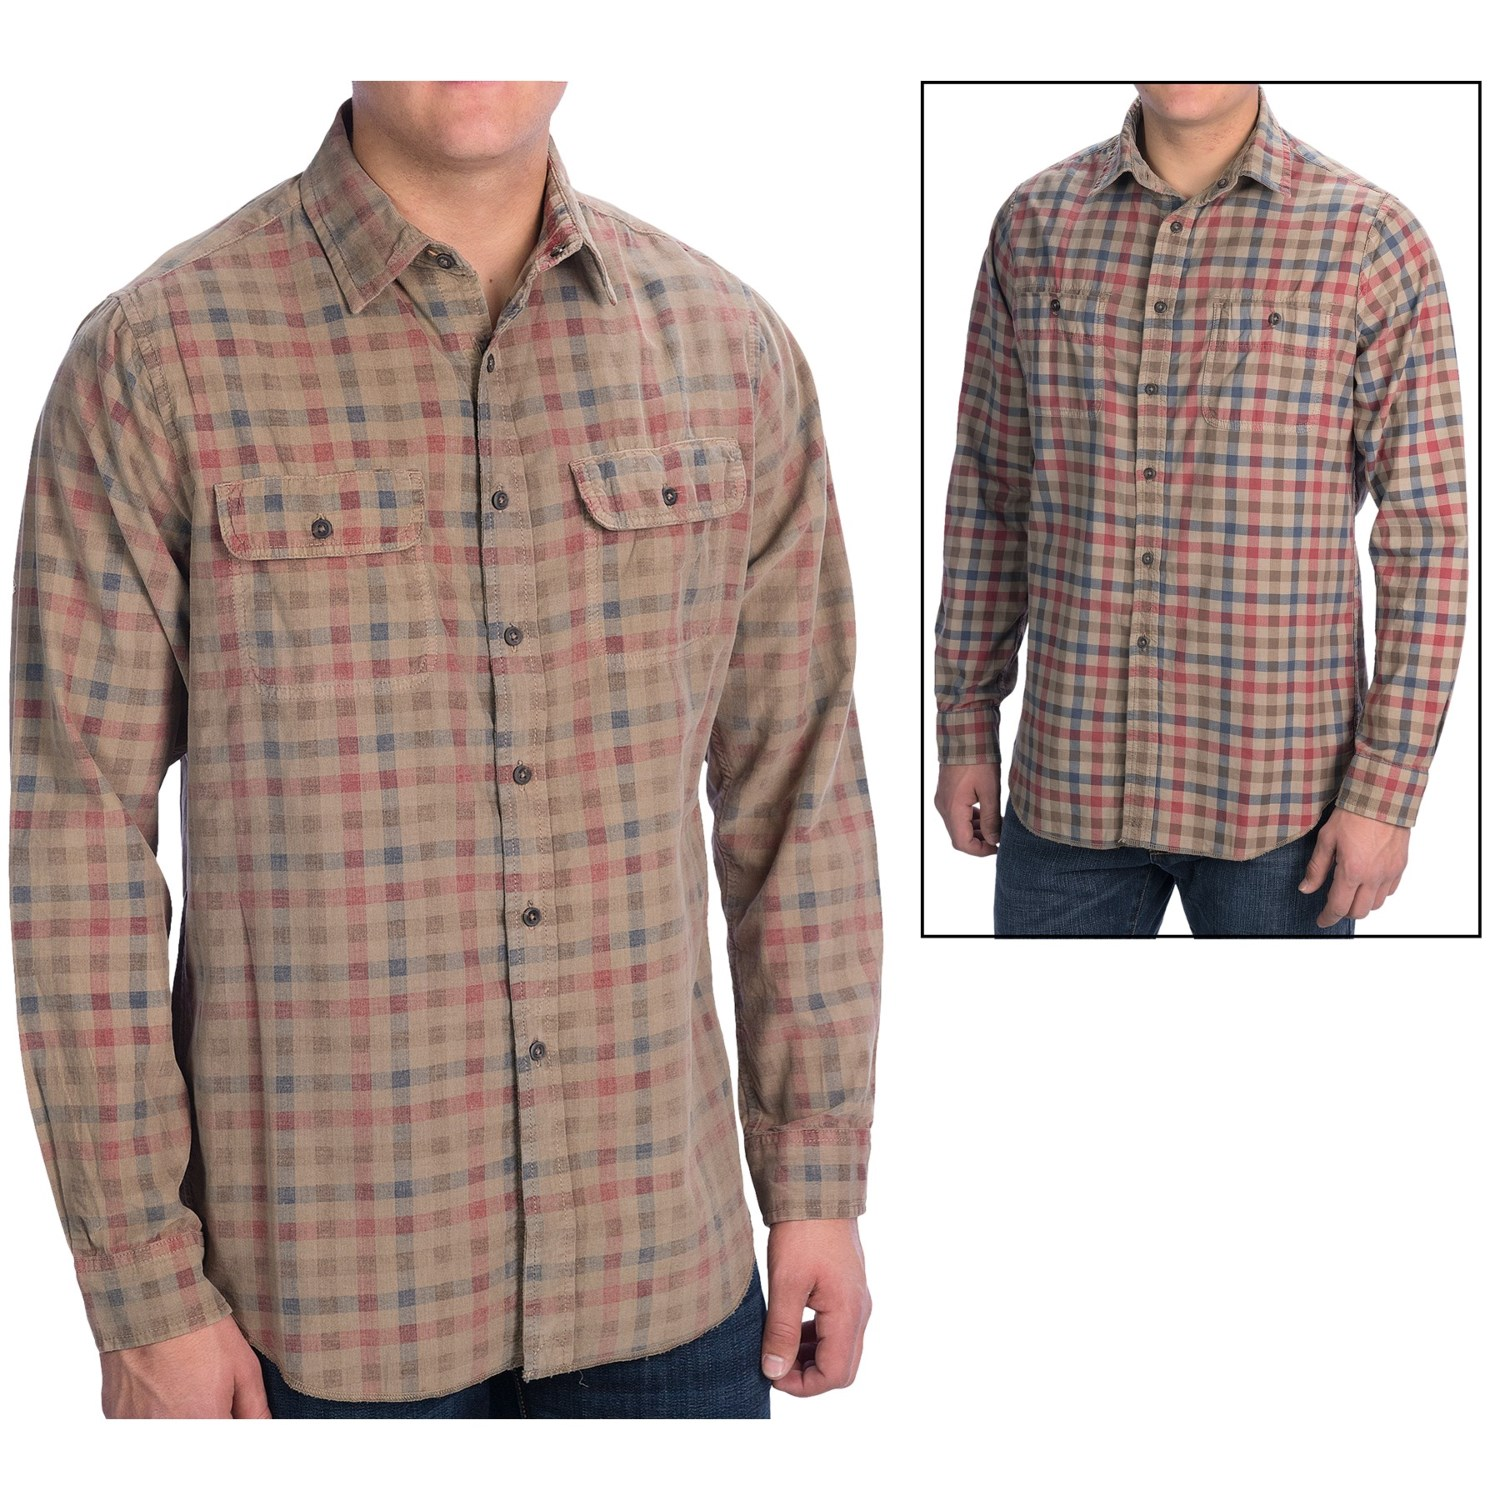 Tailor Vintage Reversible Gingham Corduroy Shirt For Men